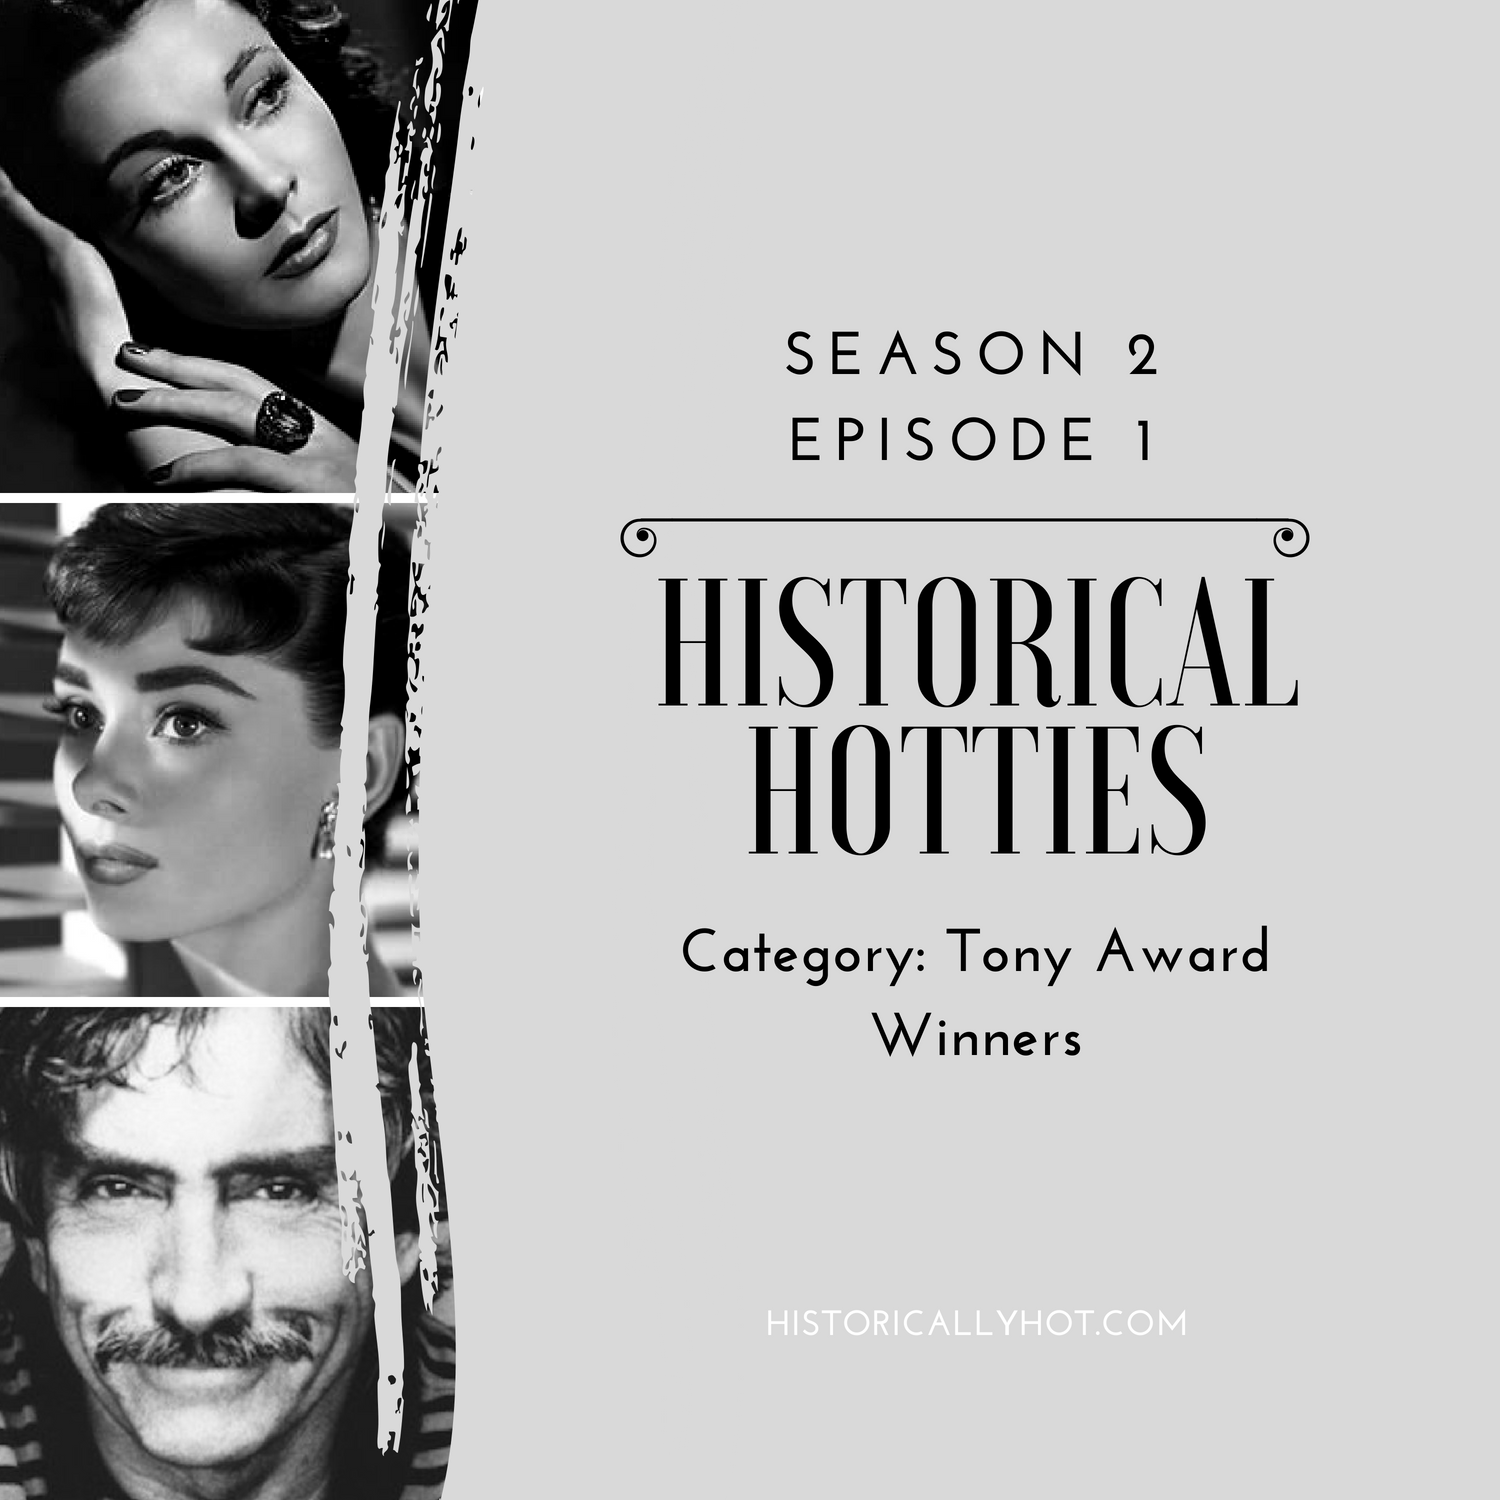 historical hotties tony